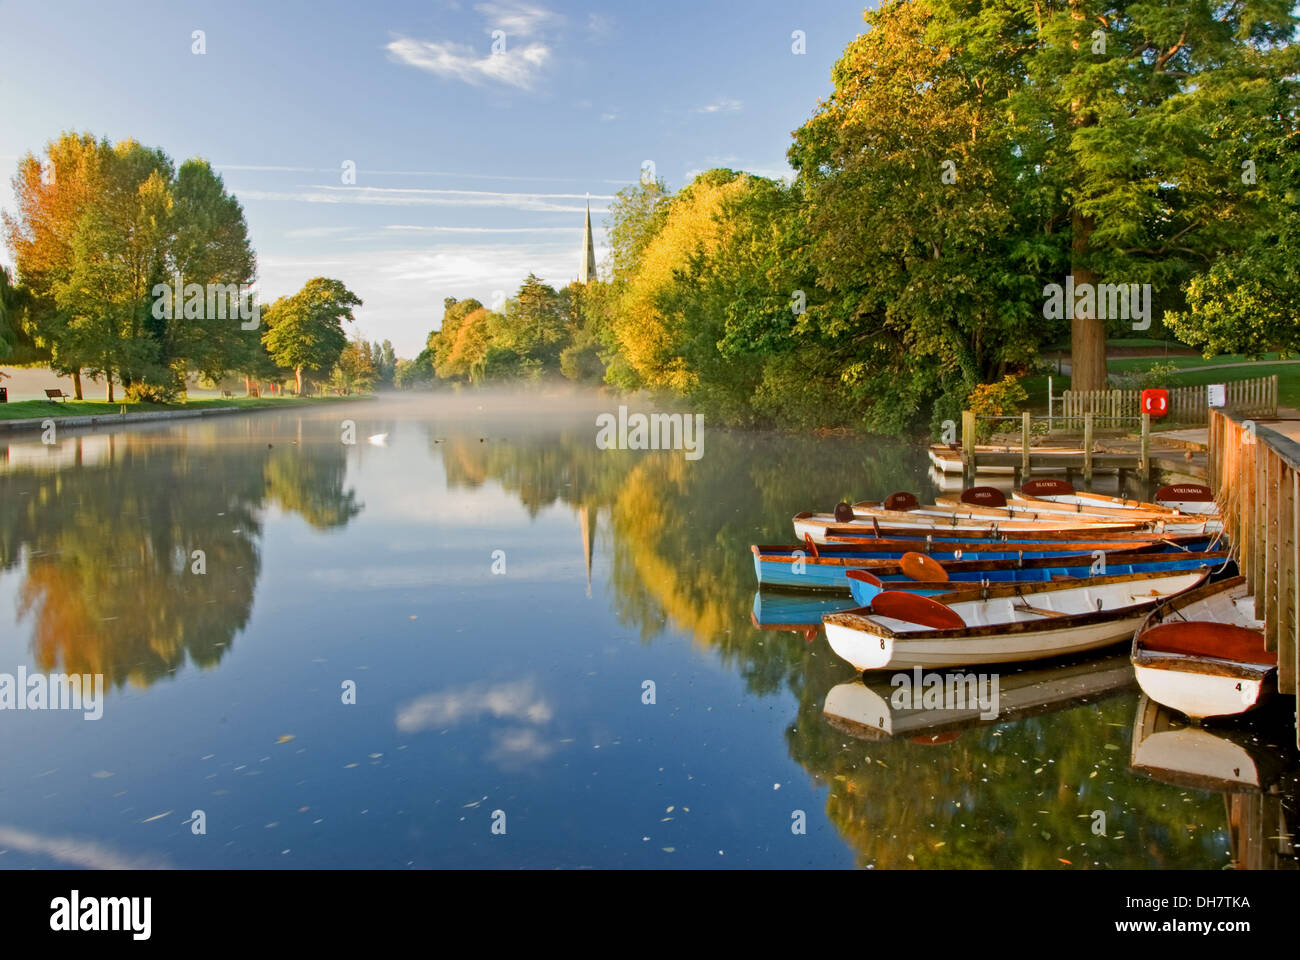 Autumnal reflections on the River Avon, with a view towards Holy Trinity church, burial place of William Shakespeare Stratford upon Avon. - Stock Image